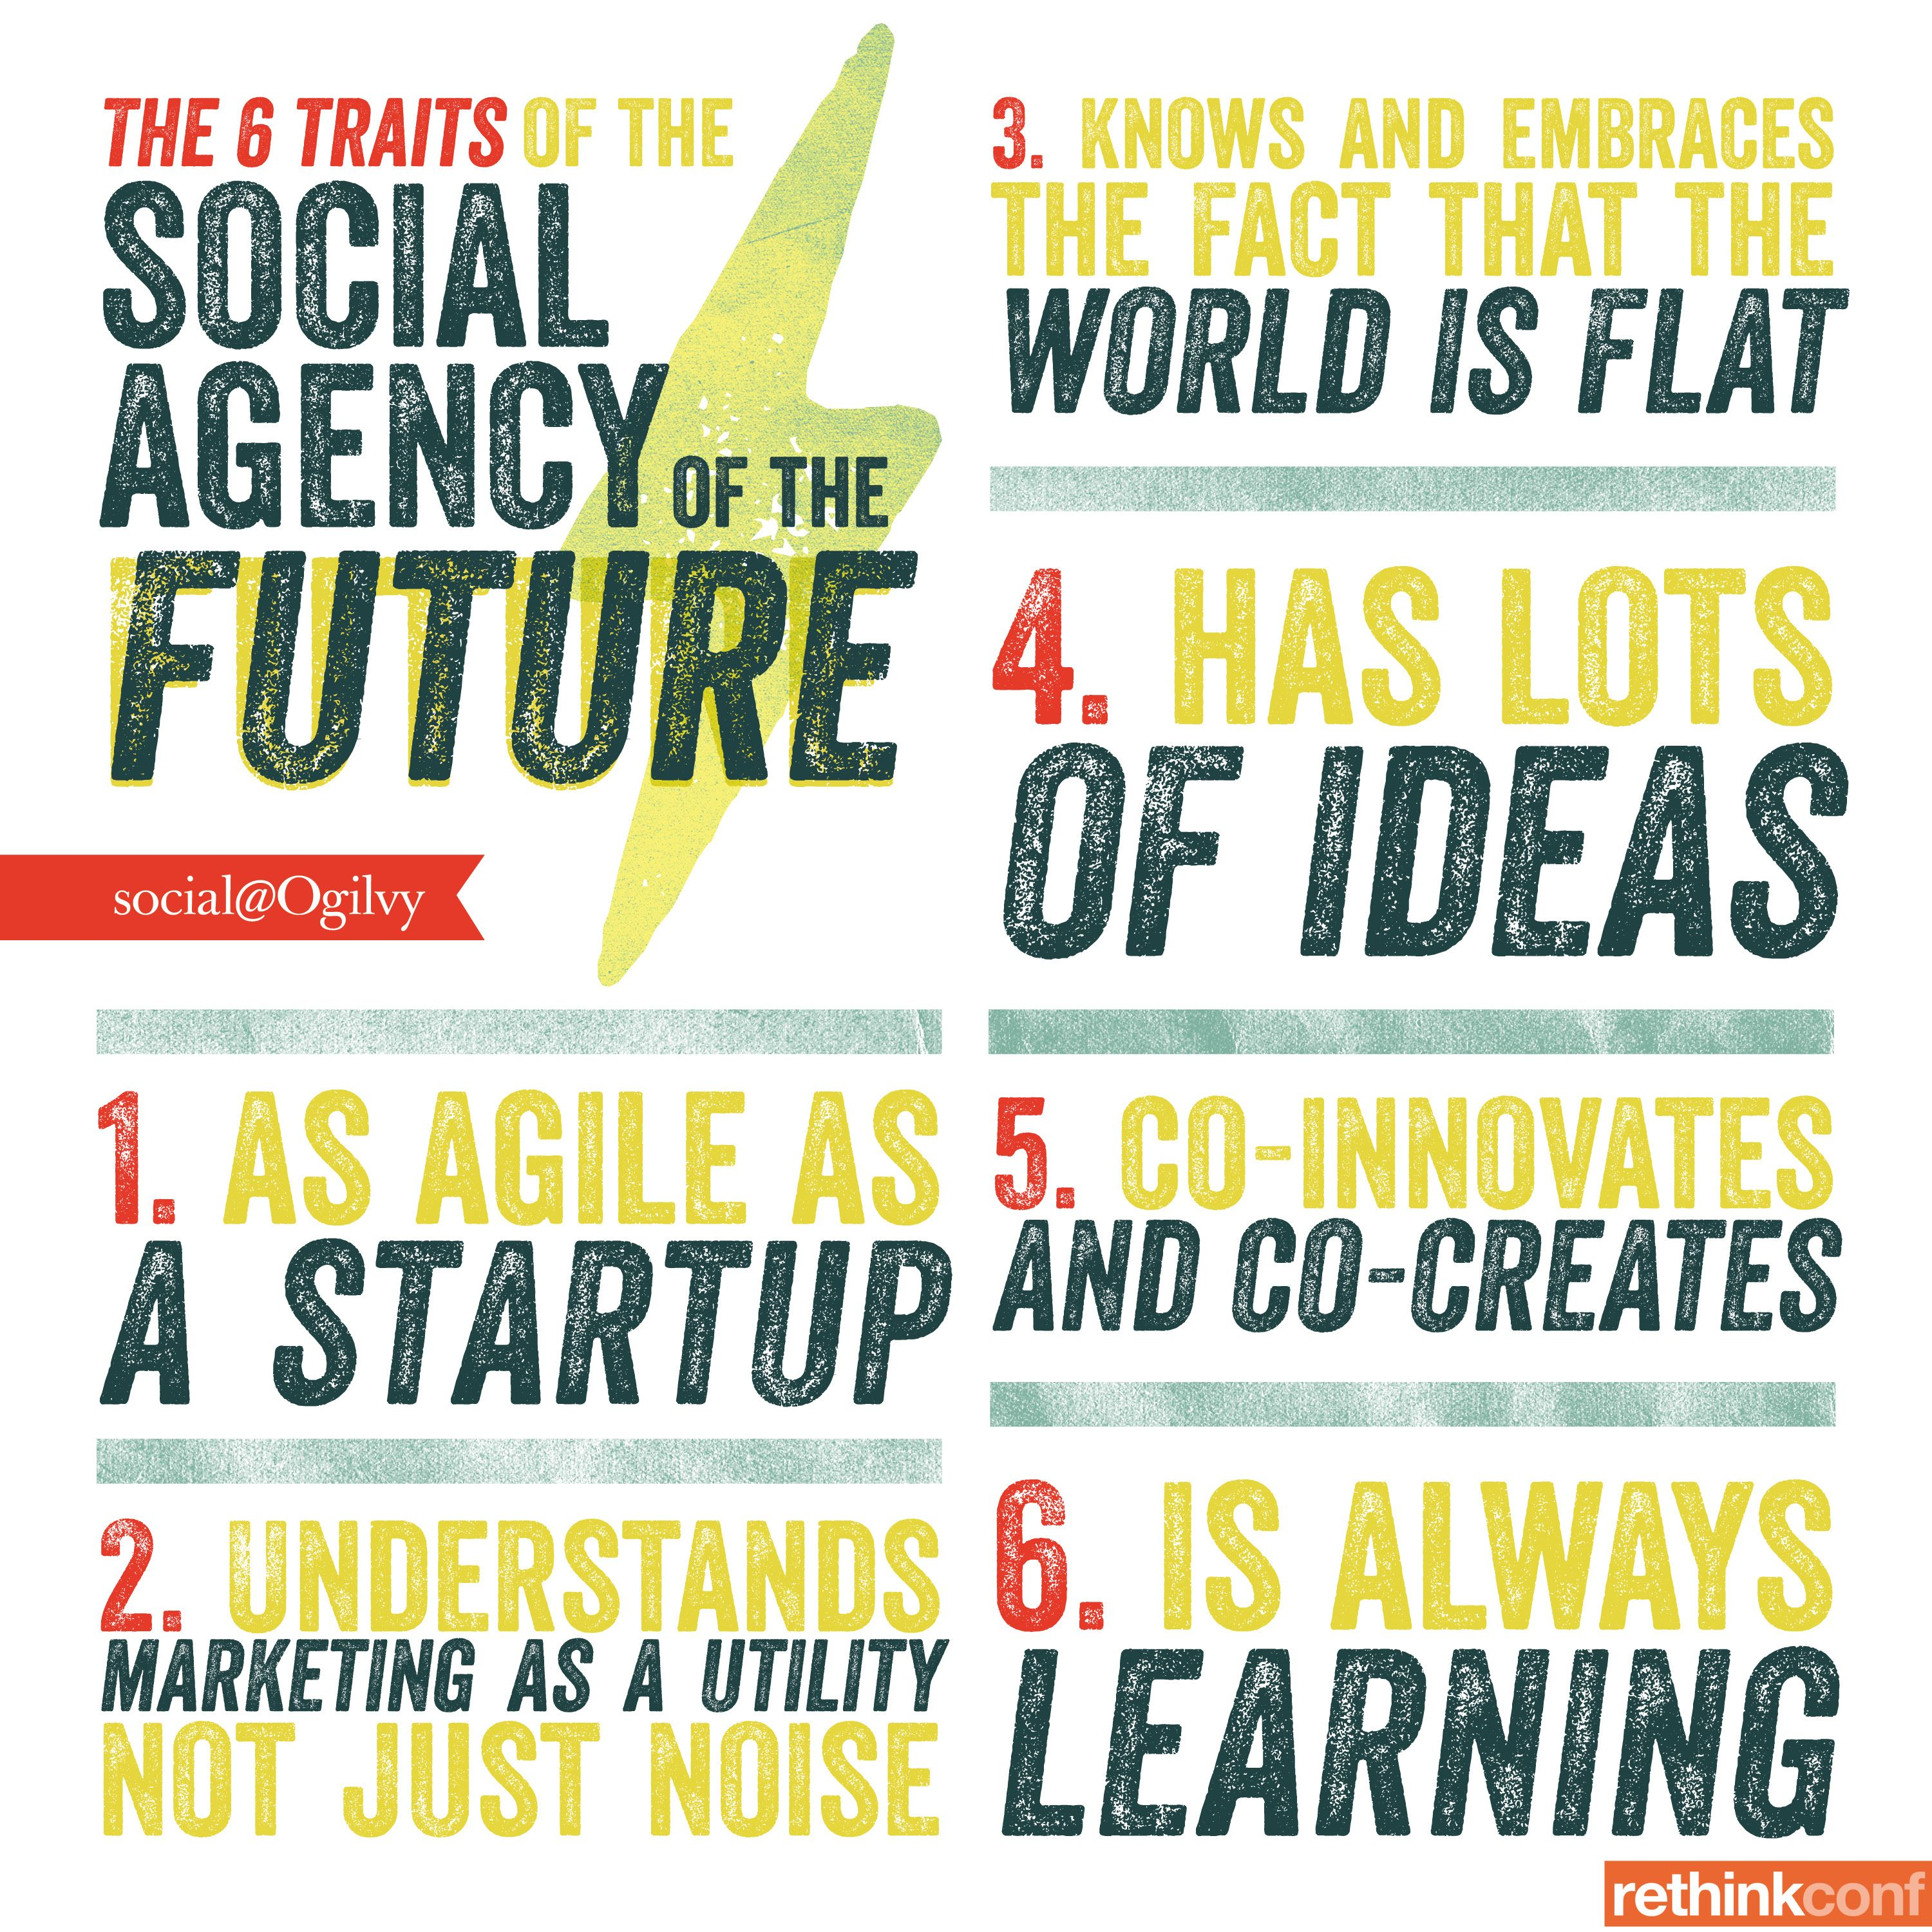 The 6 Traits of the Social Agency of the Future #Infographic via @Social@Ogilvy's Gemma Craven.